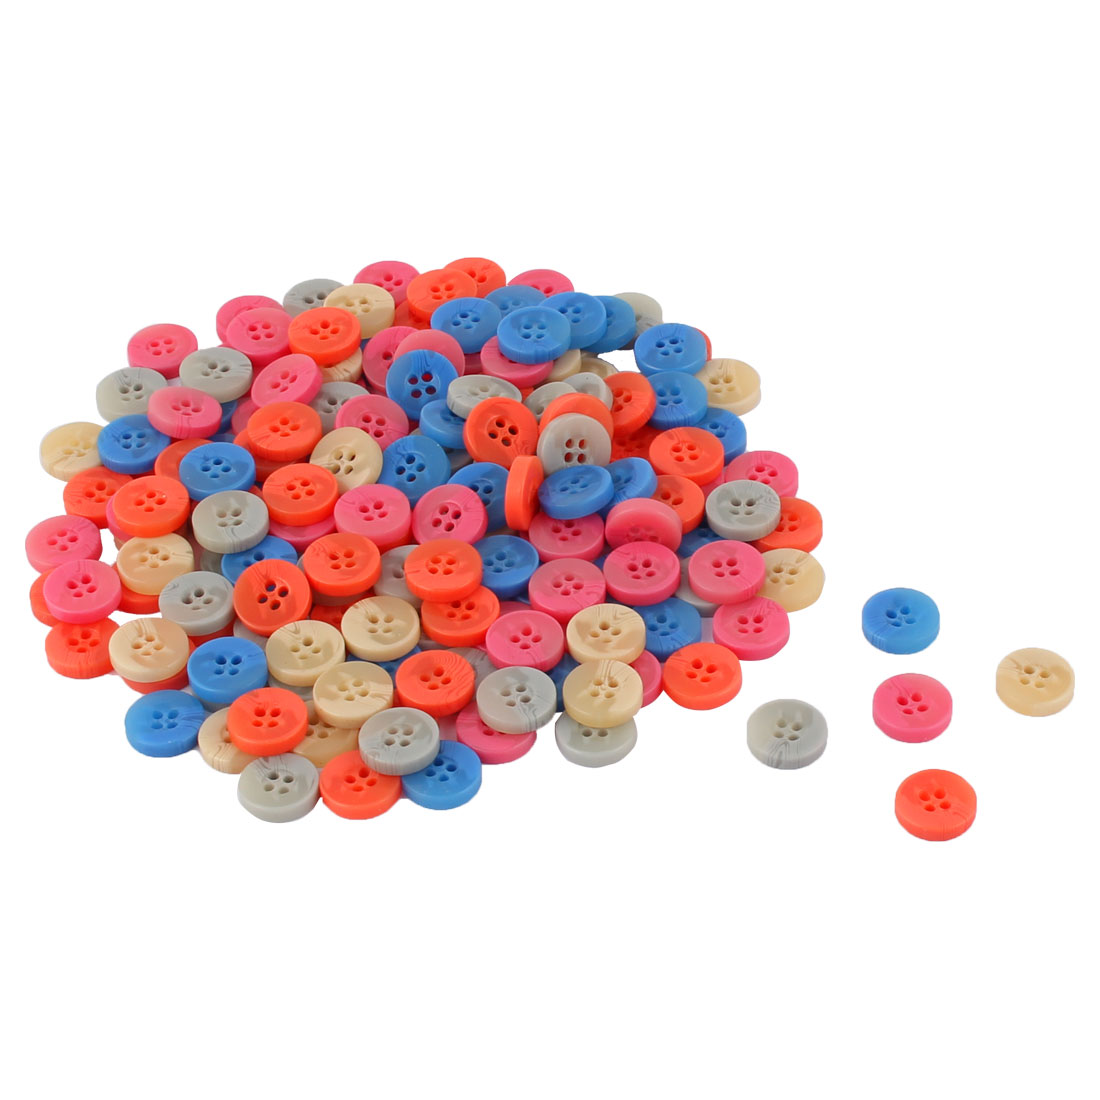 Household Plastic Round Shaped Clothes Trousers Shirt Button Assorted Color 176 Pcs